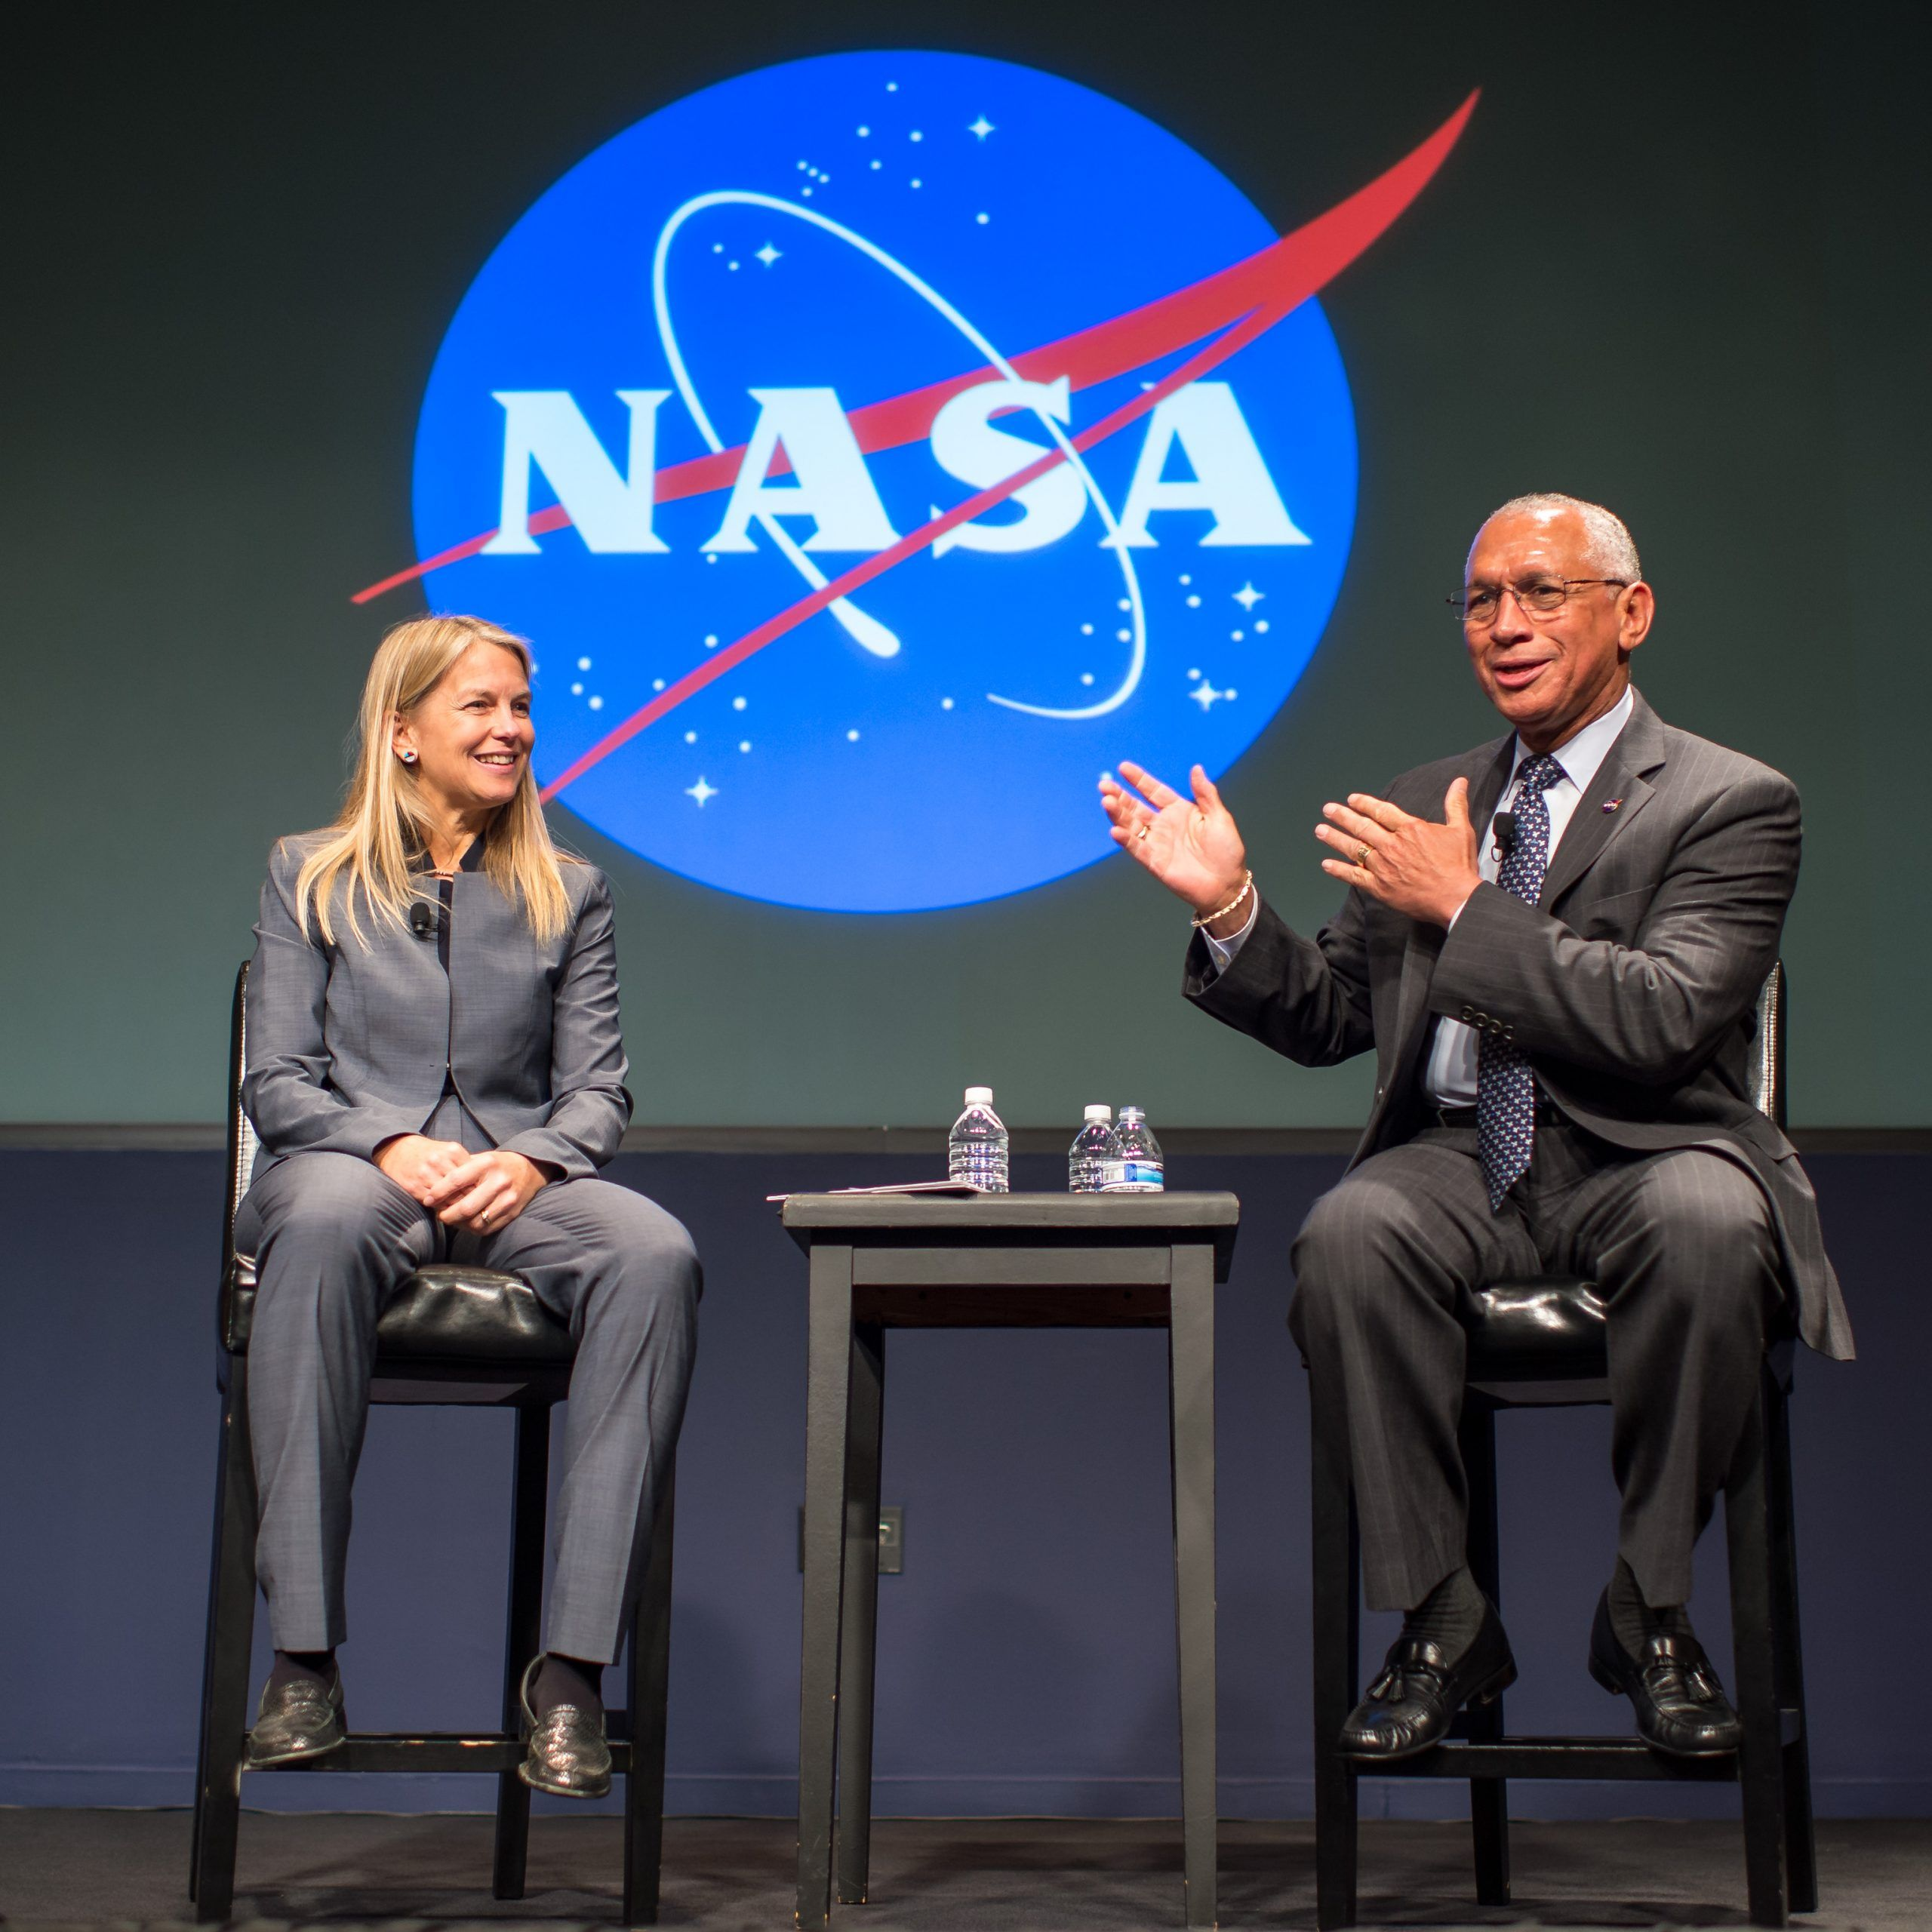 NASA town hall meeting with NASA's new Deputy Administrator Dava Newman and NASA Administrator Charlie Bolden, Tuesday, May 19, 2015 at NASA Headquarters in Washington. Bolden welcomed Newman to NASA and the two spent time talking with employees and taking their questions.  Photo Credit: (NASA/Bill Ingalls)